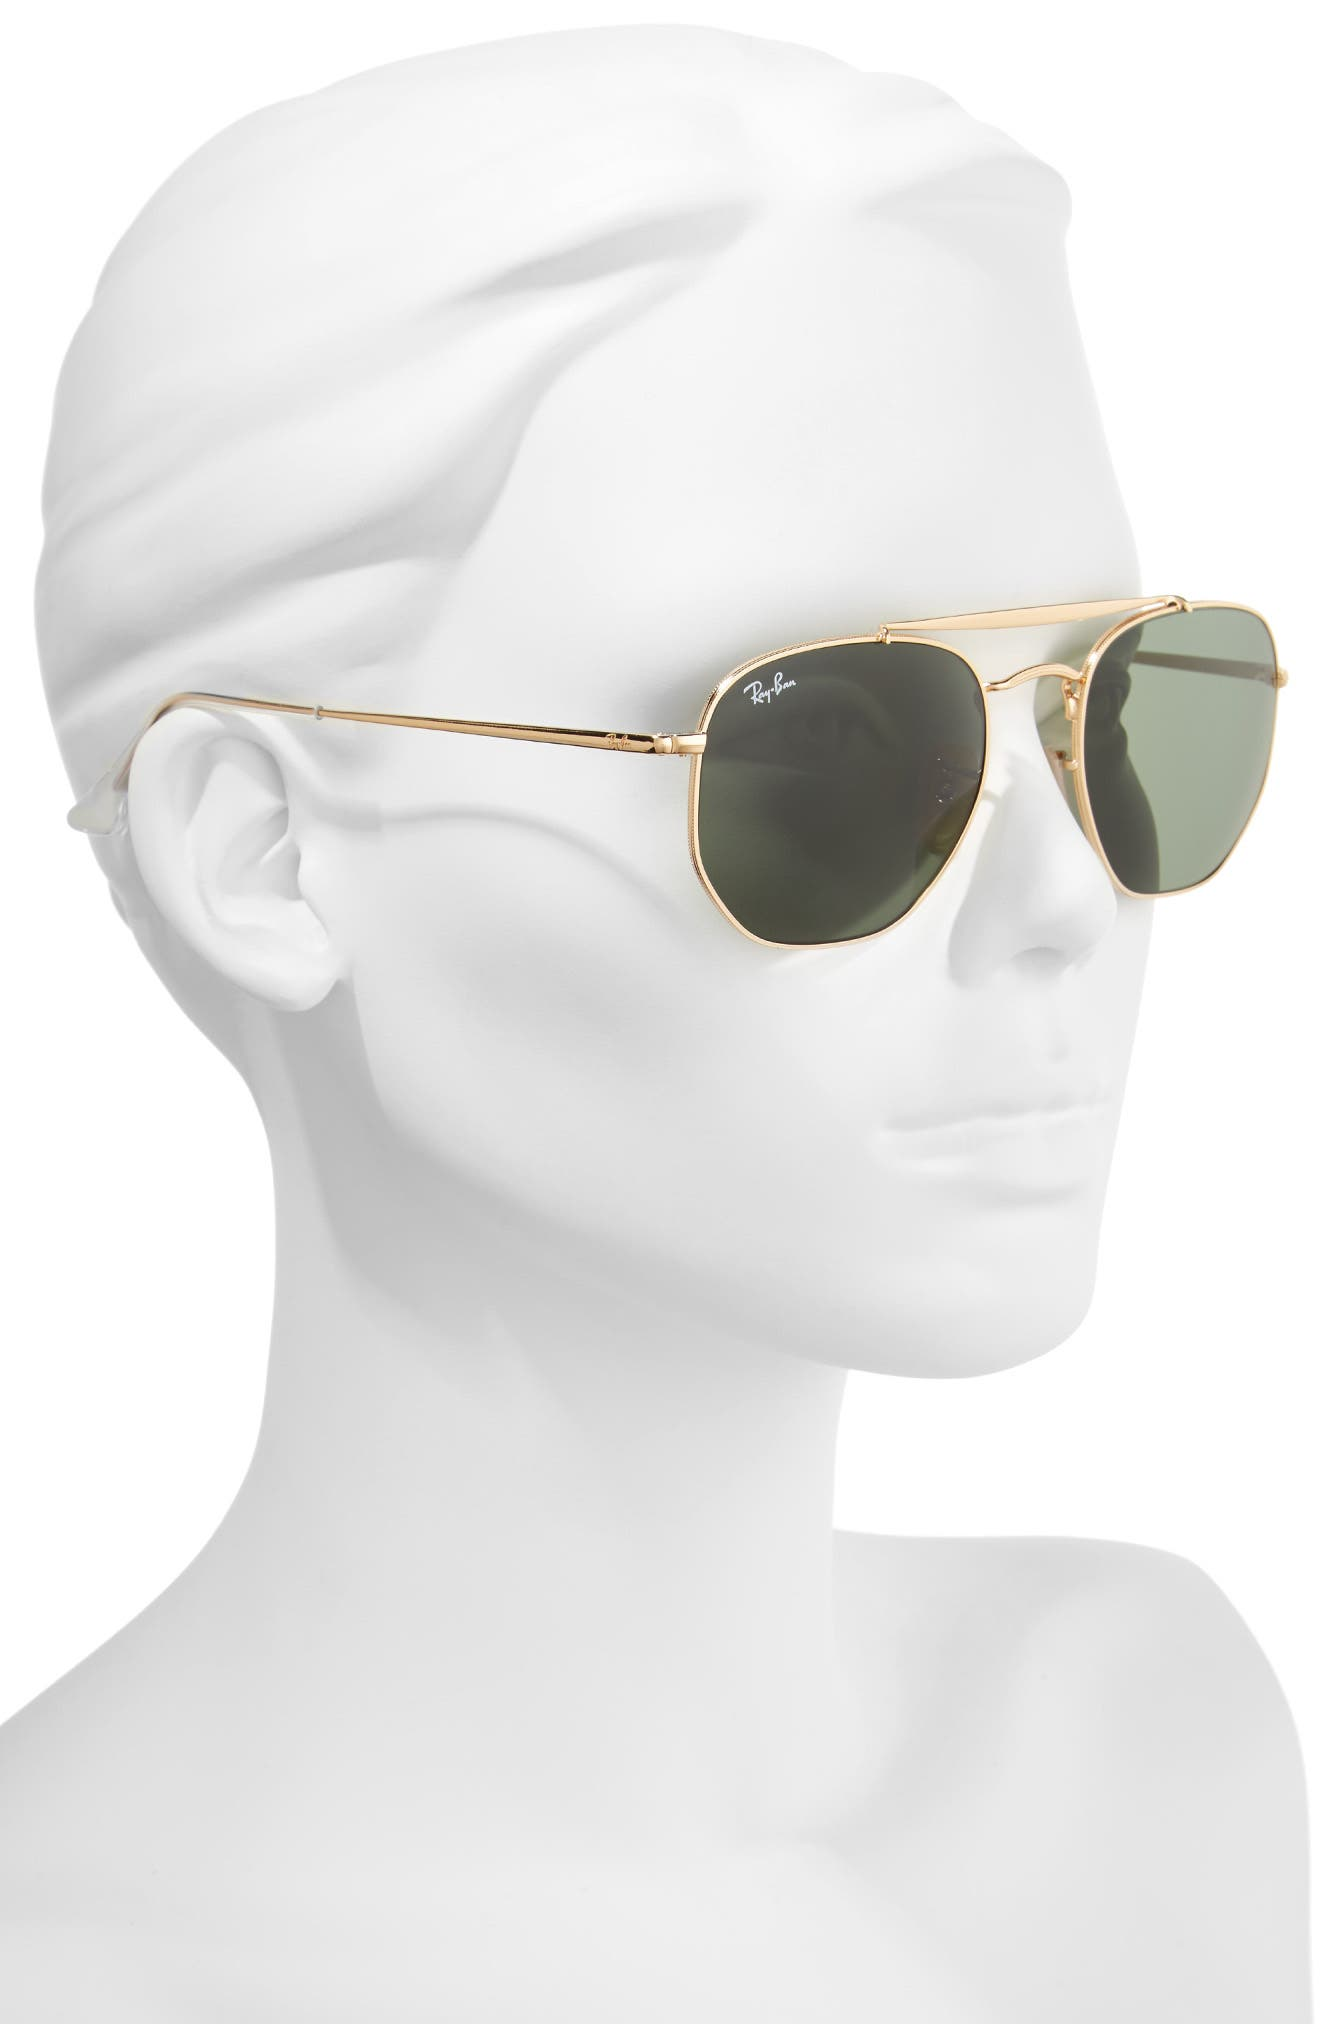 3592 54mm Sunglasses,                             Alternate thumbnail 3, color,